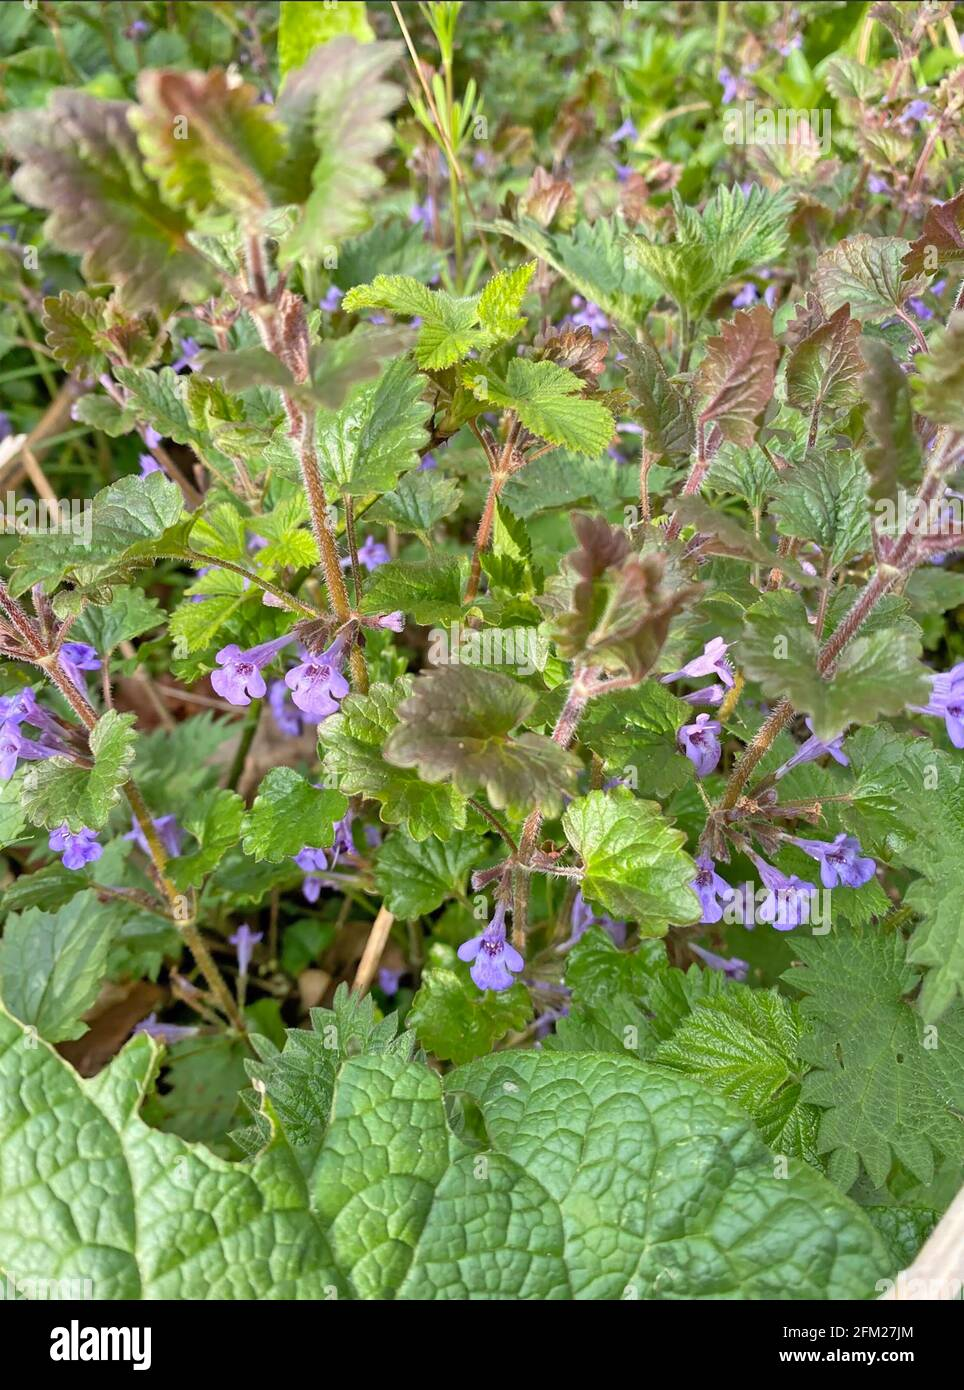 SOL IVY Glechoma hederacea. Photo : Tony Gale Banque D'Images